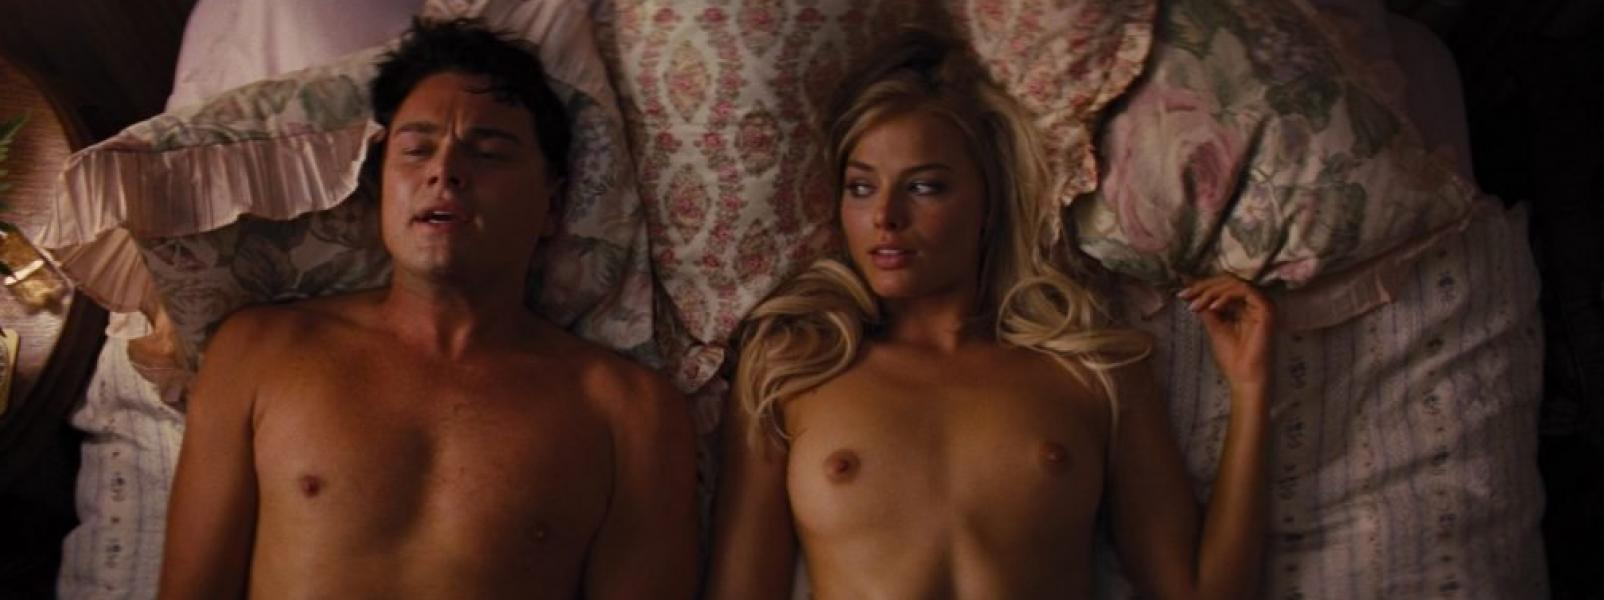 Margot Robbie Nude and Sexy 7